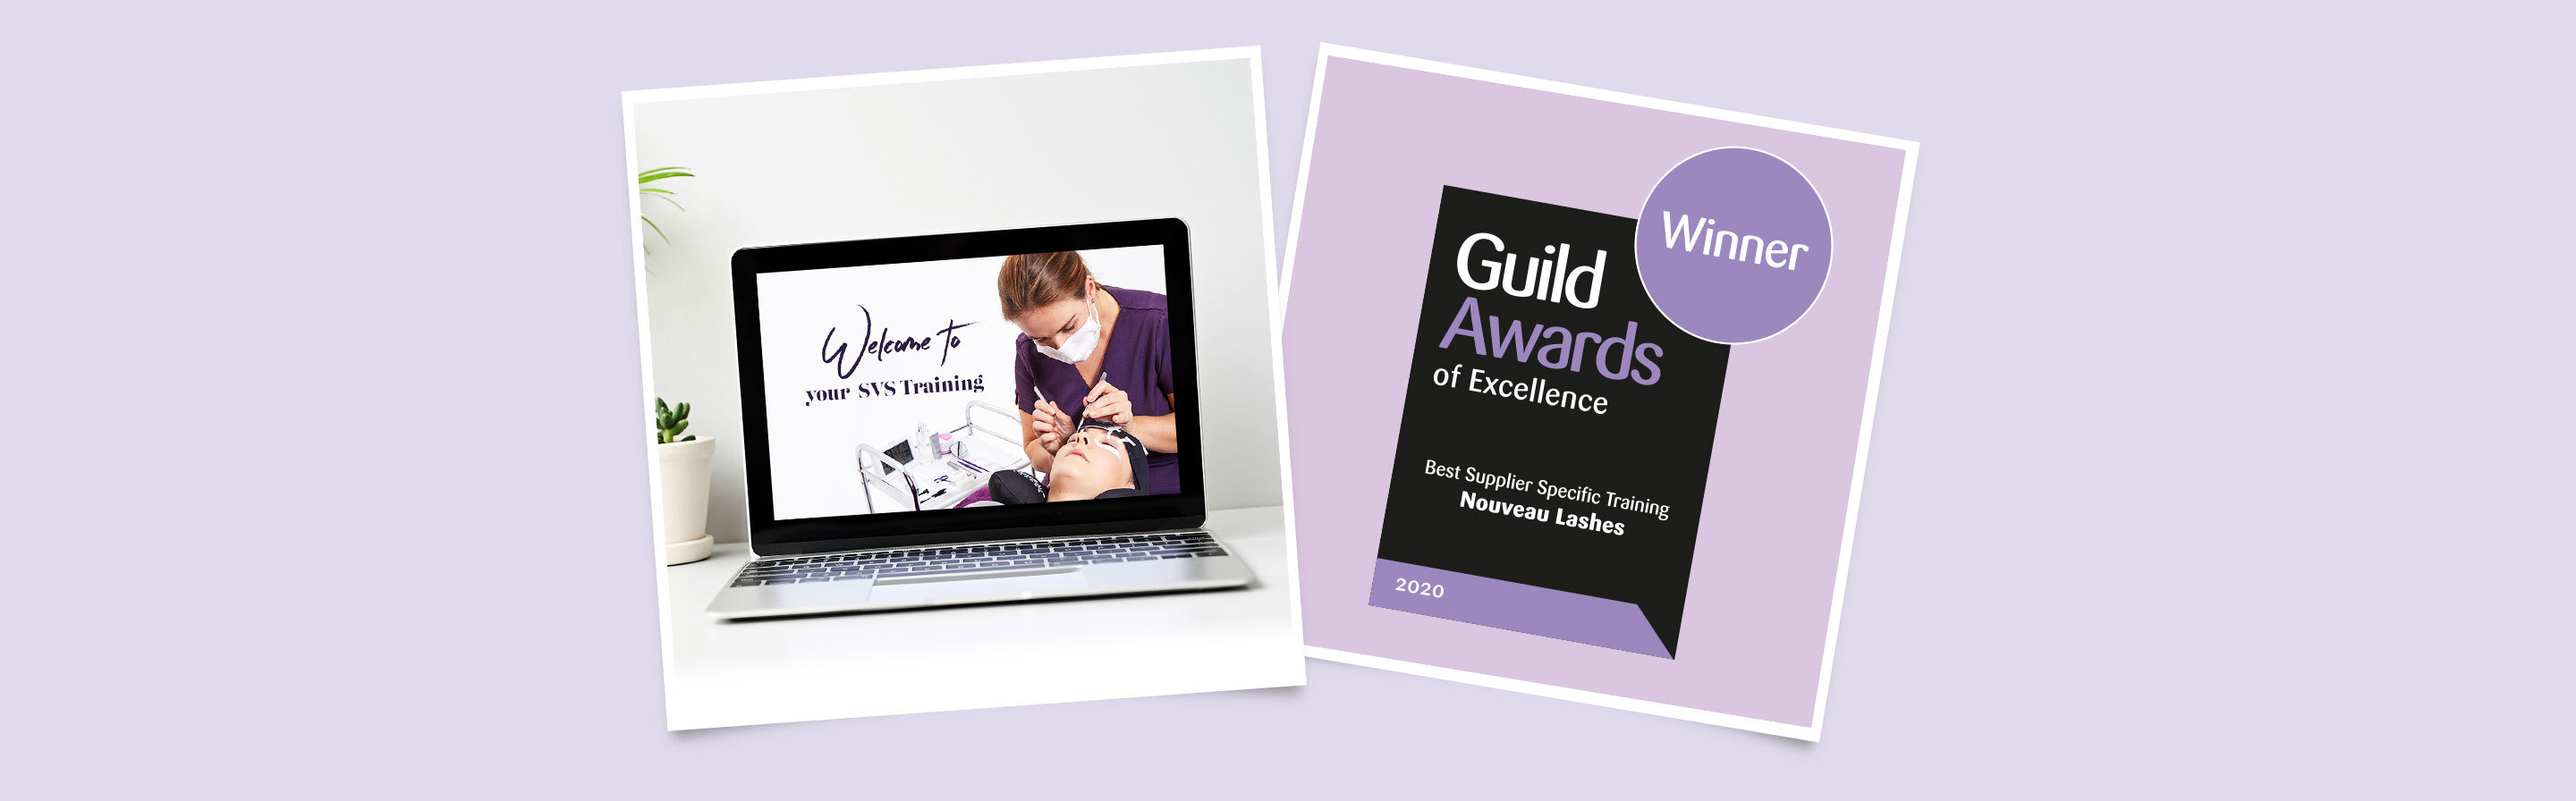 SVS new volume lash extensions training course: Guild Award